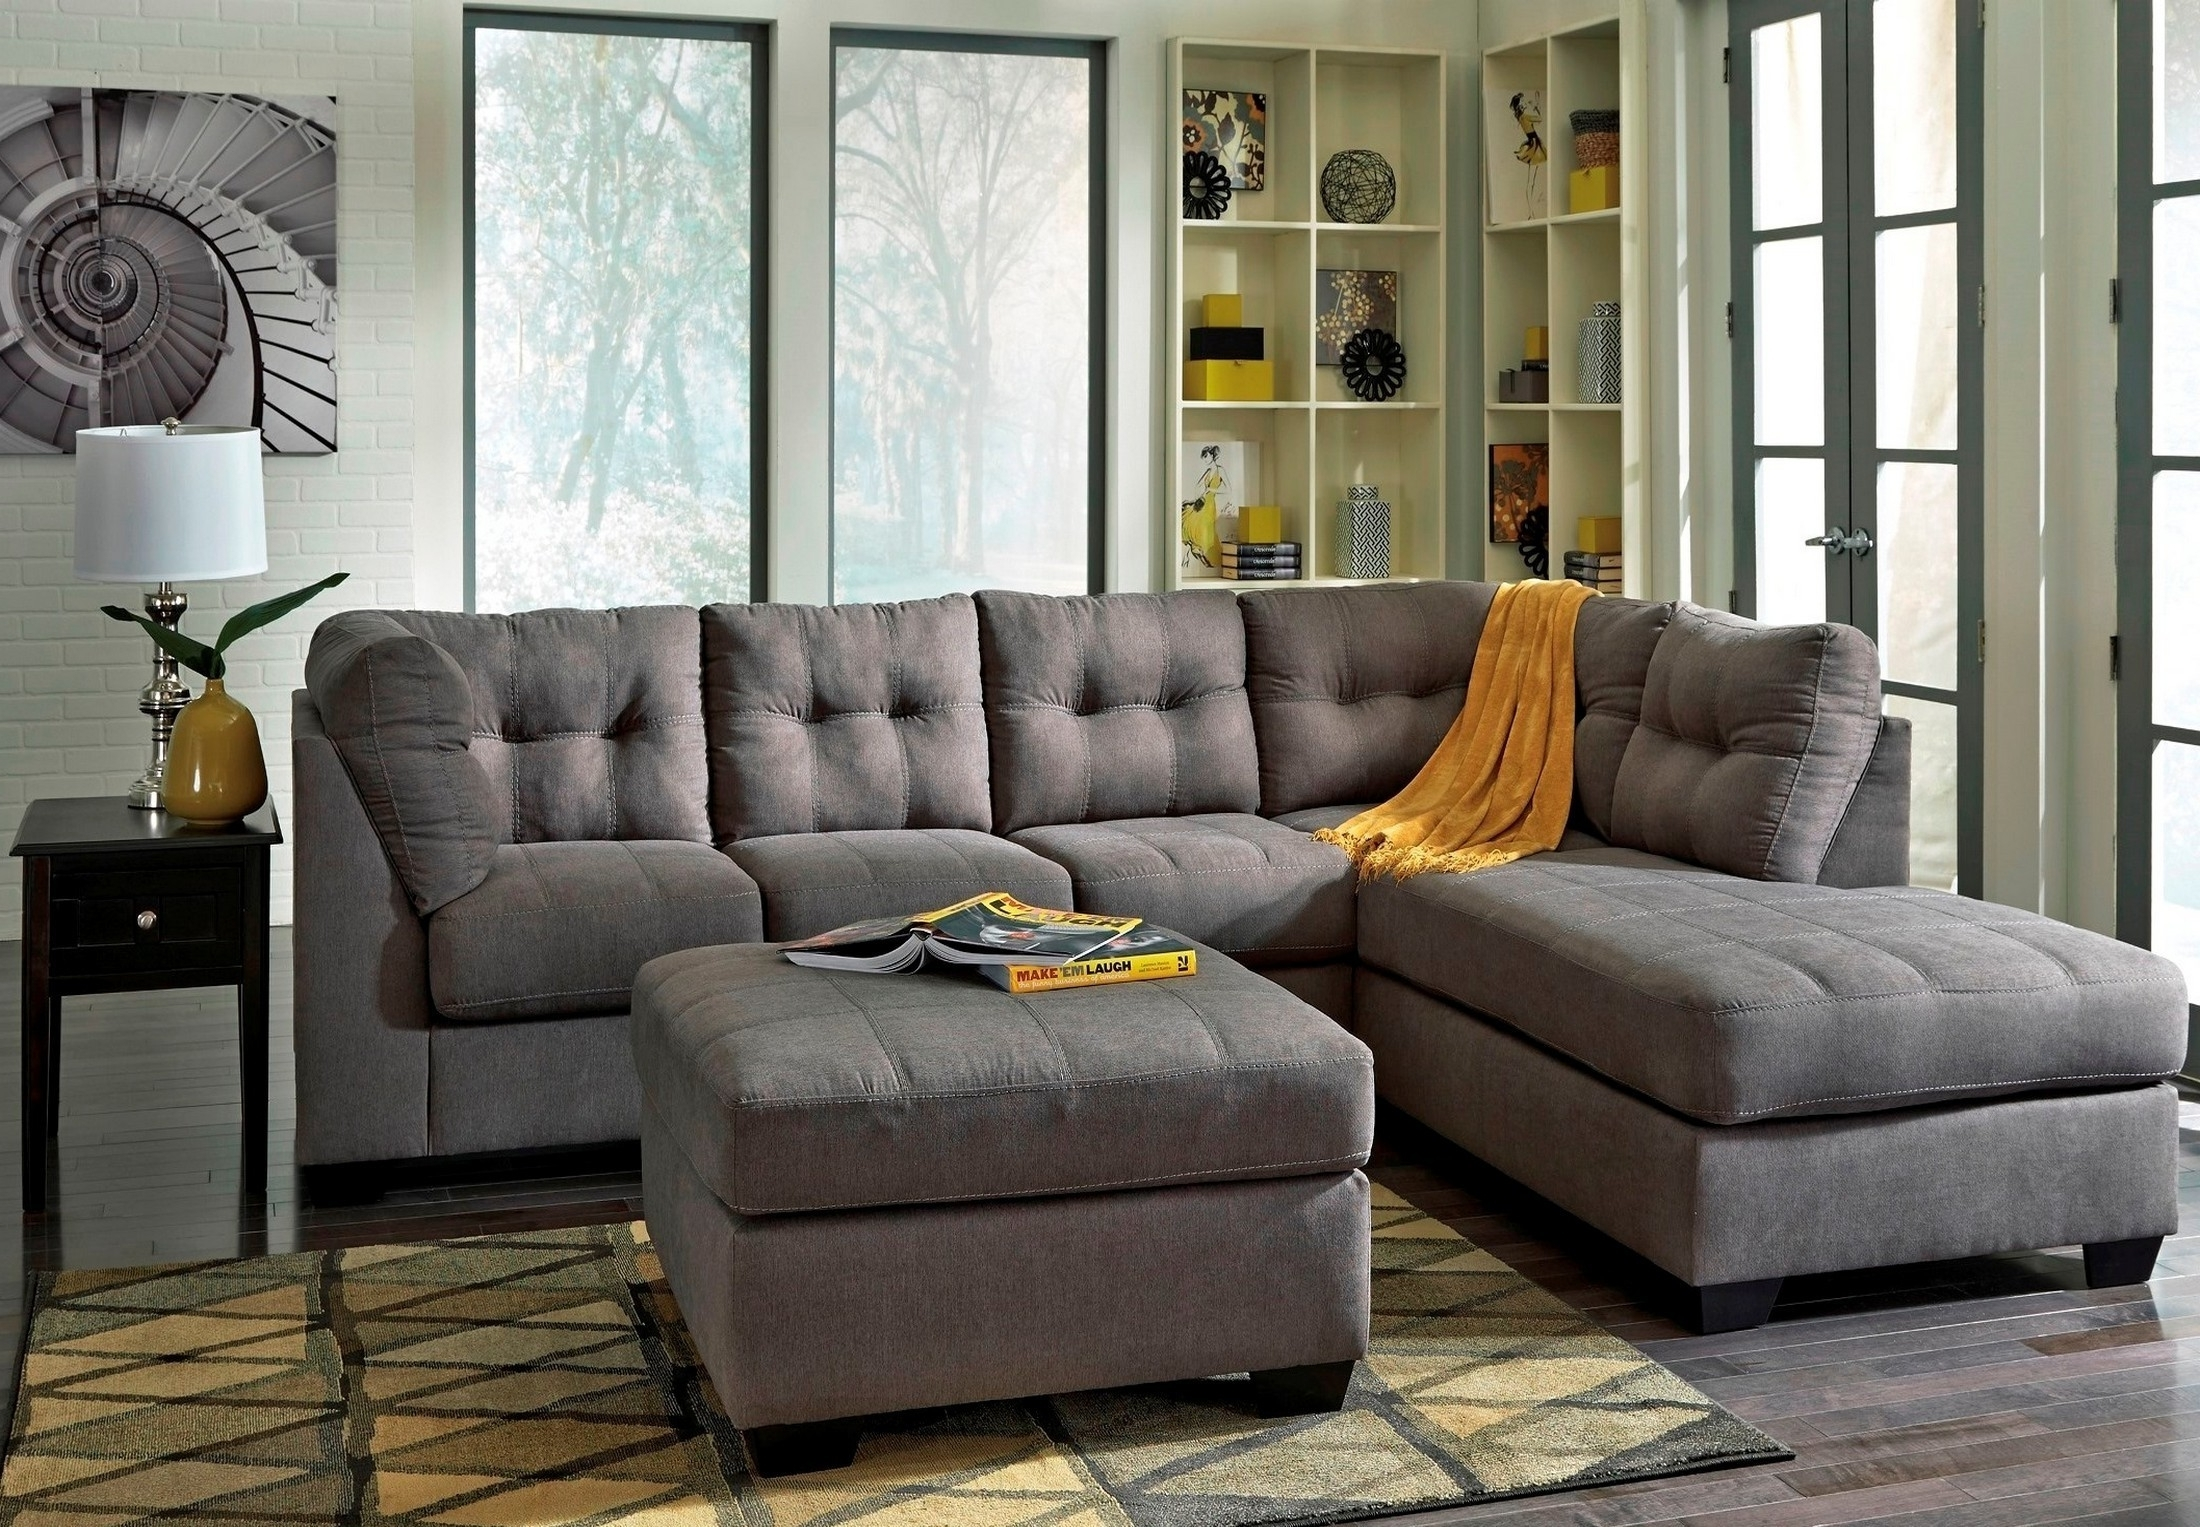 Dufresne Sectional Sofas With Well Liked Maier Charcoal Laf Sectional From Ashley (45200 16 67) (View 7 of 15)